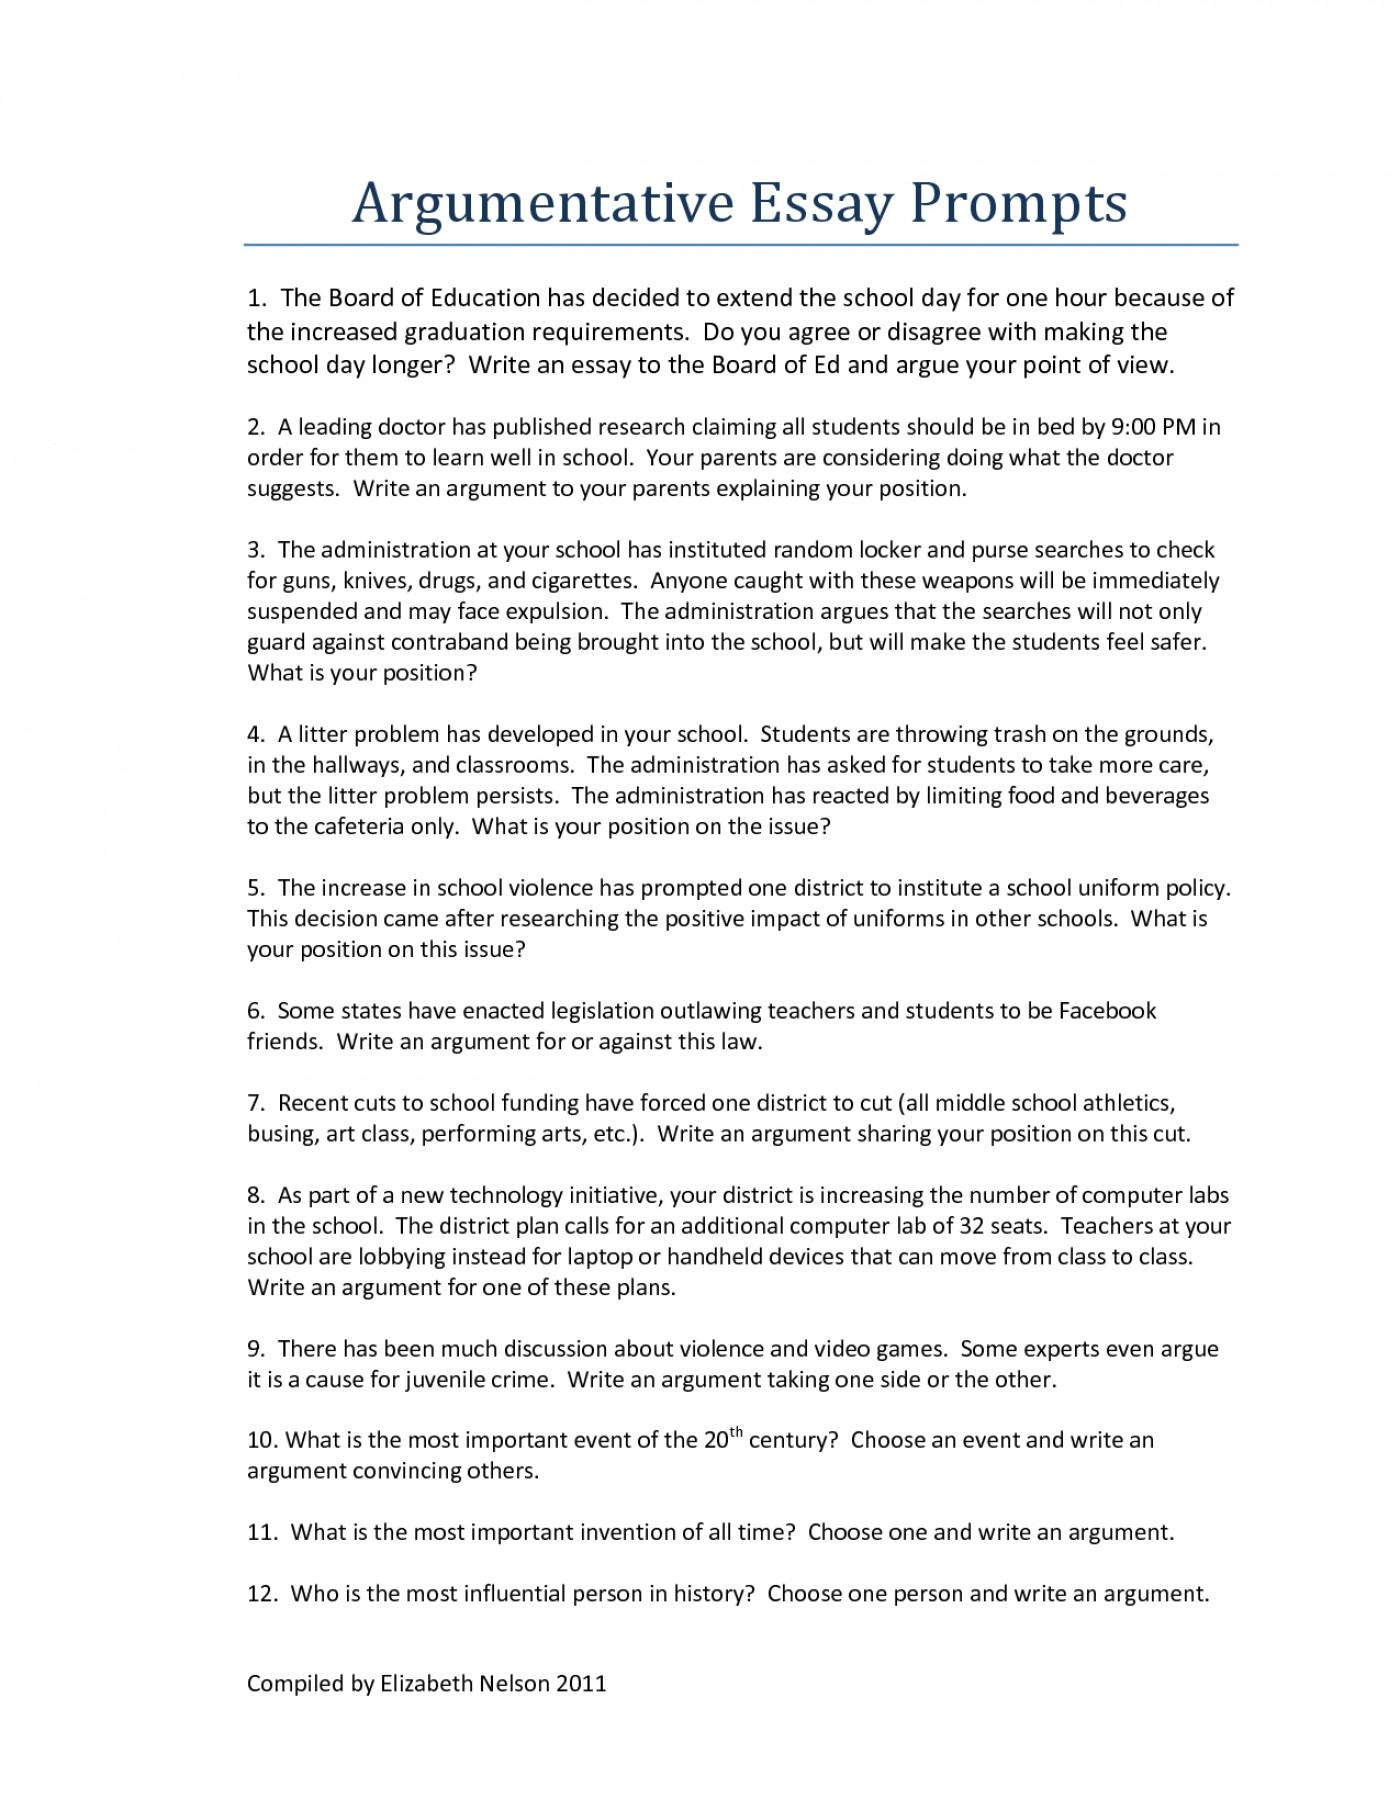 persuasive essay topics for middle school example  thatsnotus   persuasive essay topics for middle school argumentative writings  and essays easy good high argument higher